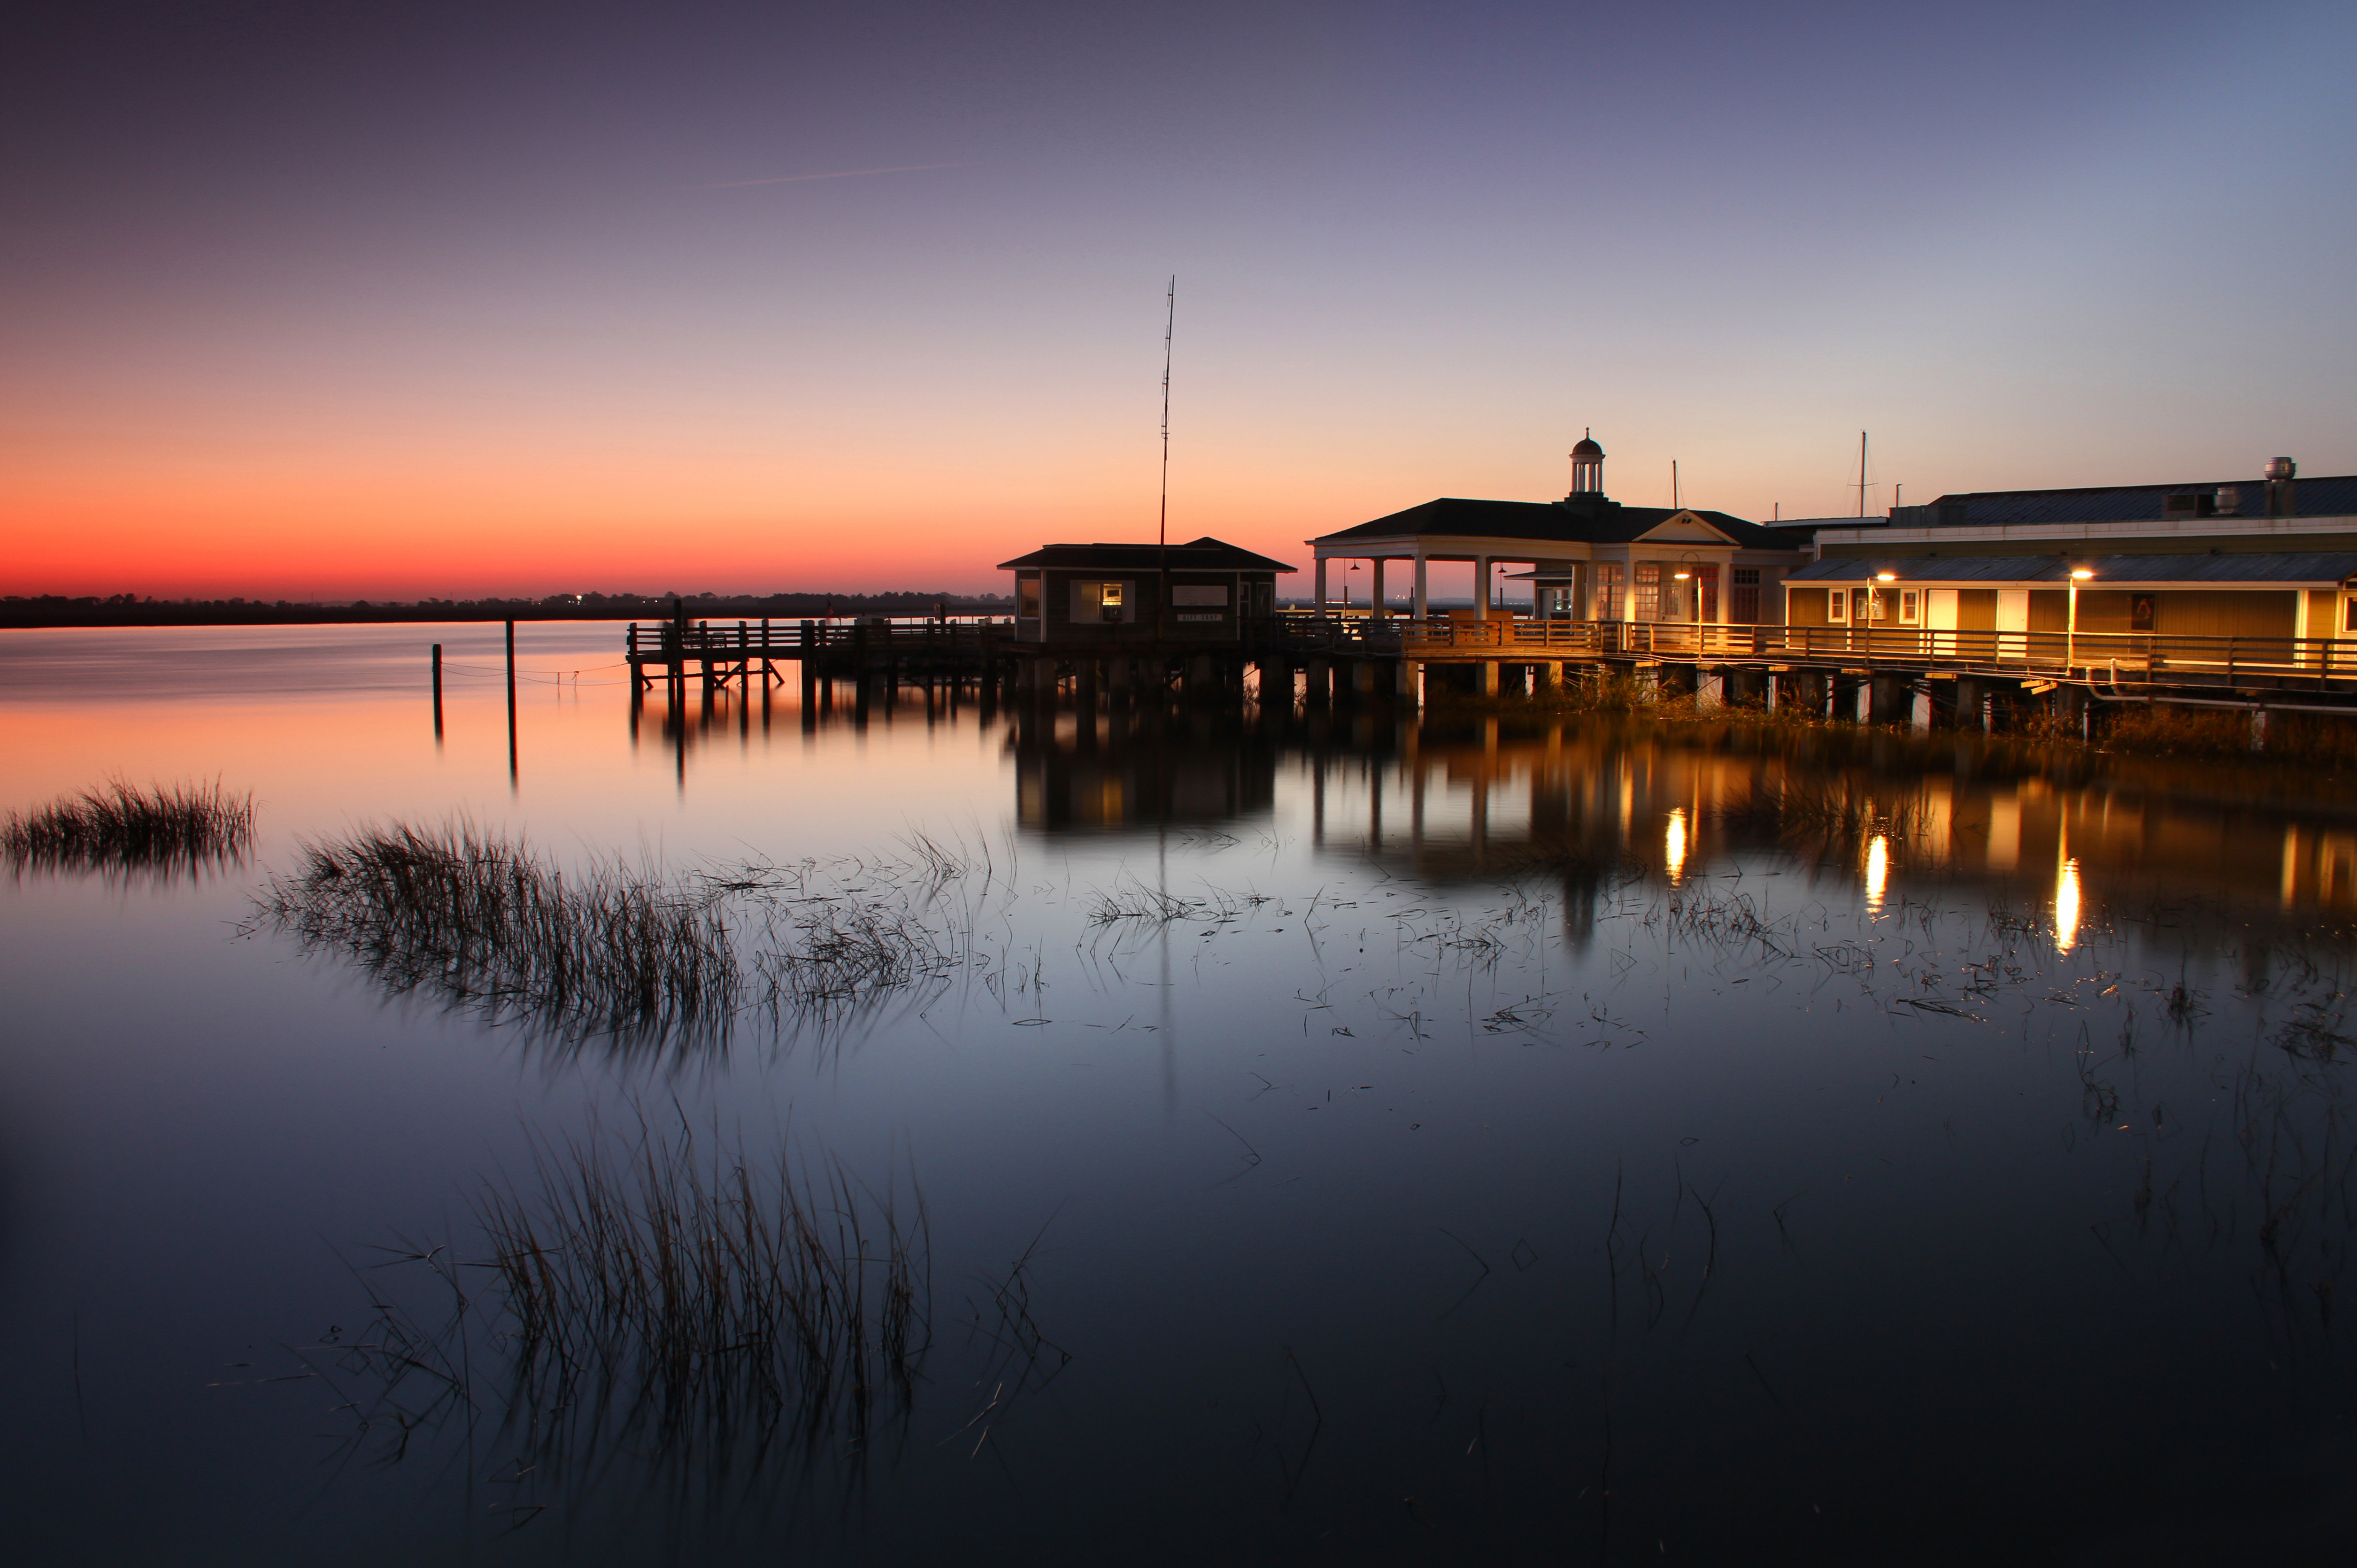 Pier and building at dusk on Jekyll Island, Georgia.